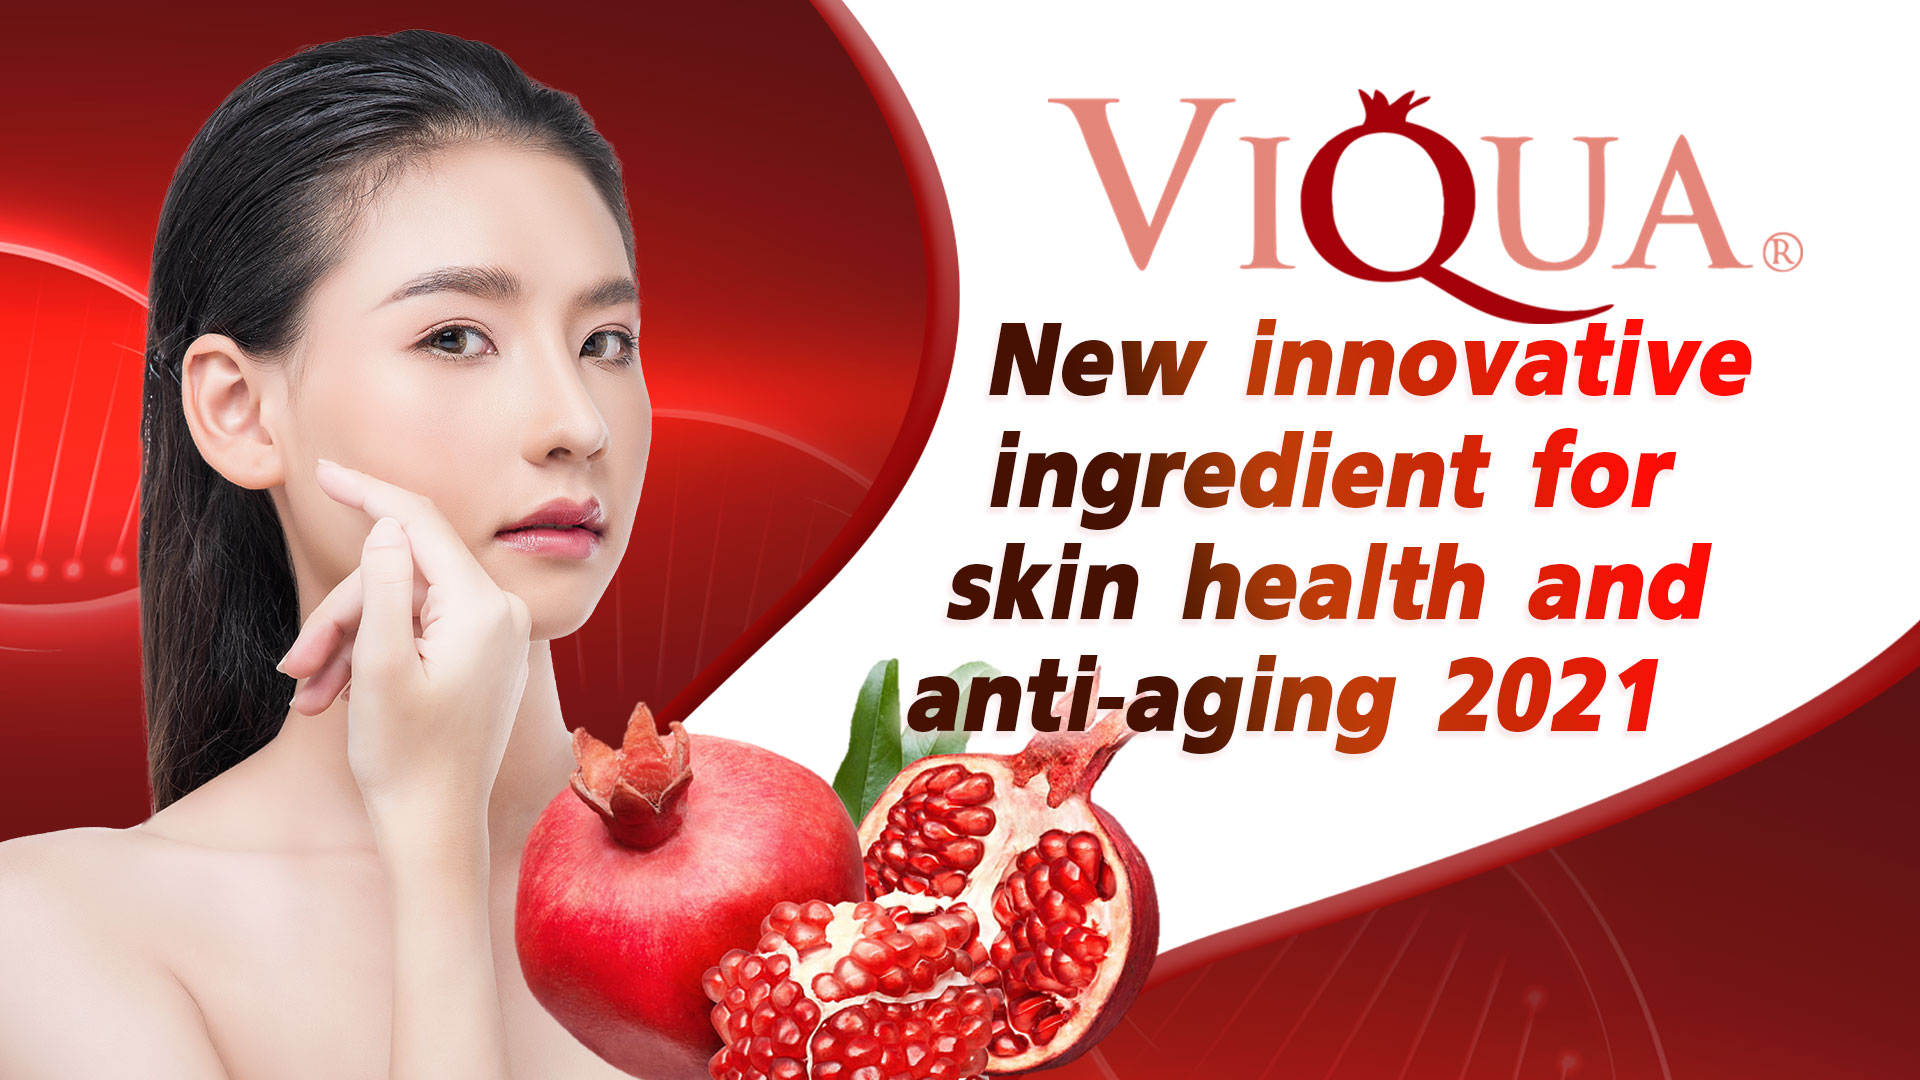 VIQUA new innovative ingredient for skin health and anti-aging 2021